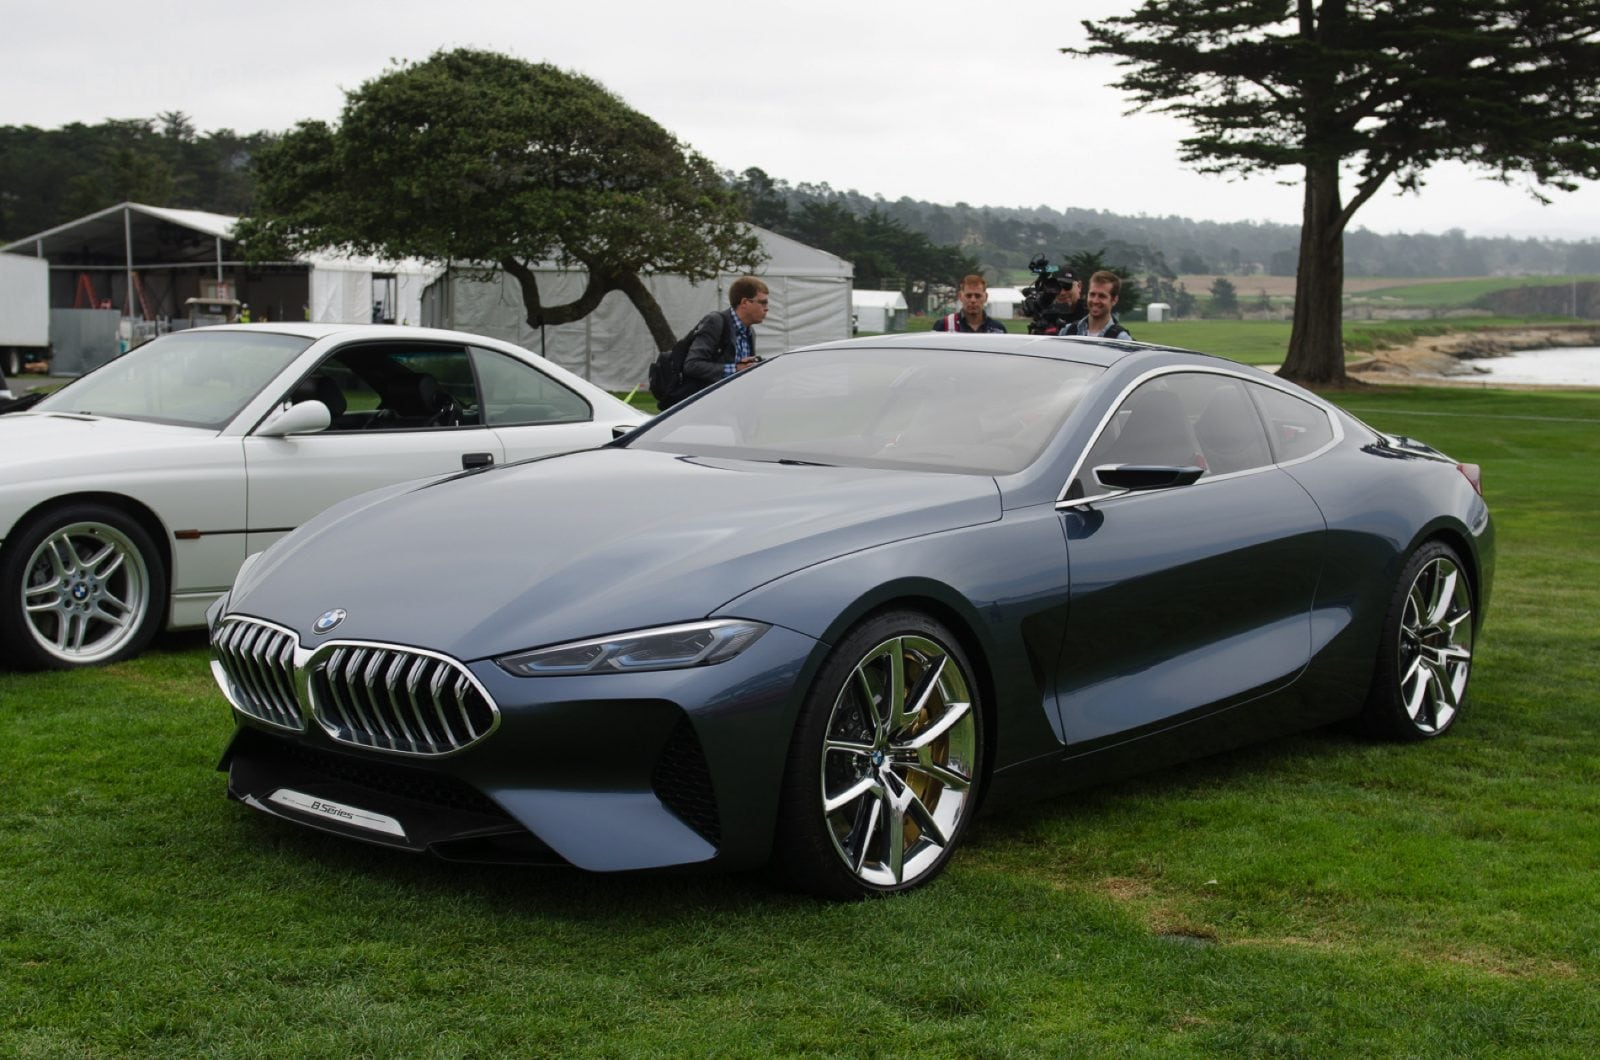 BMW 8 Series Concept 2017 Live Photos from Pebble Beach